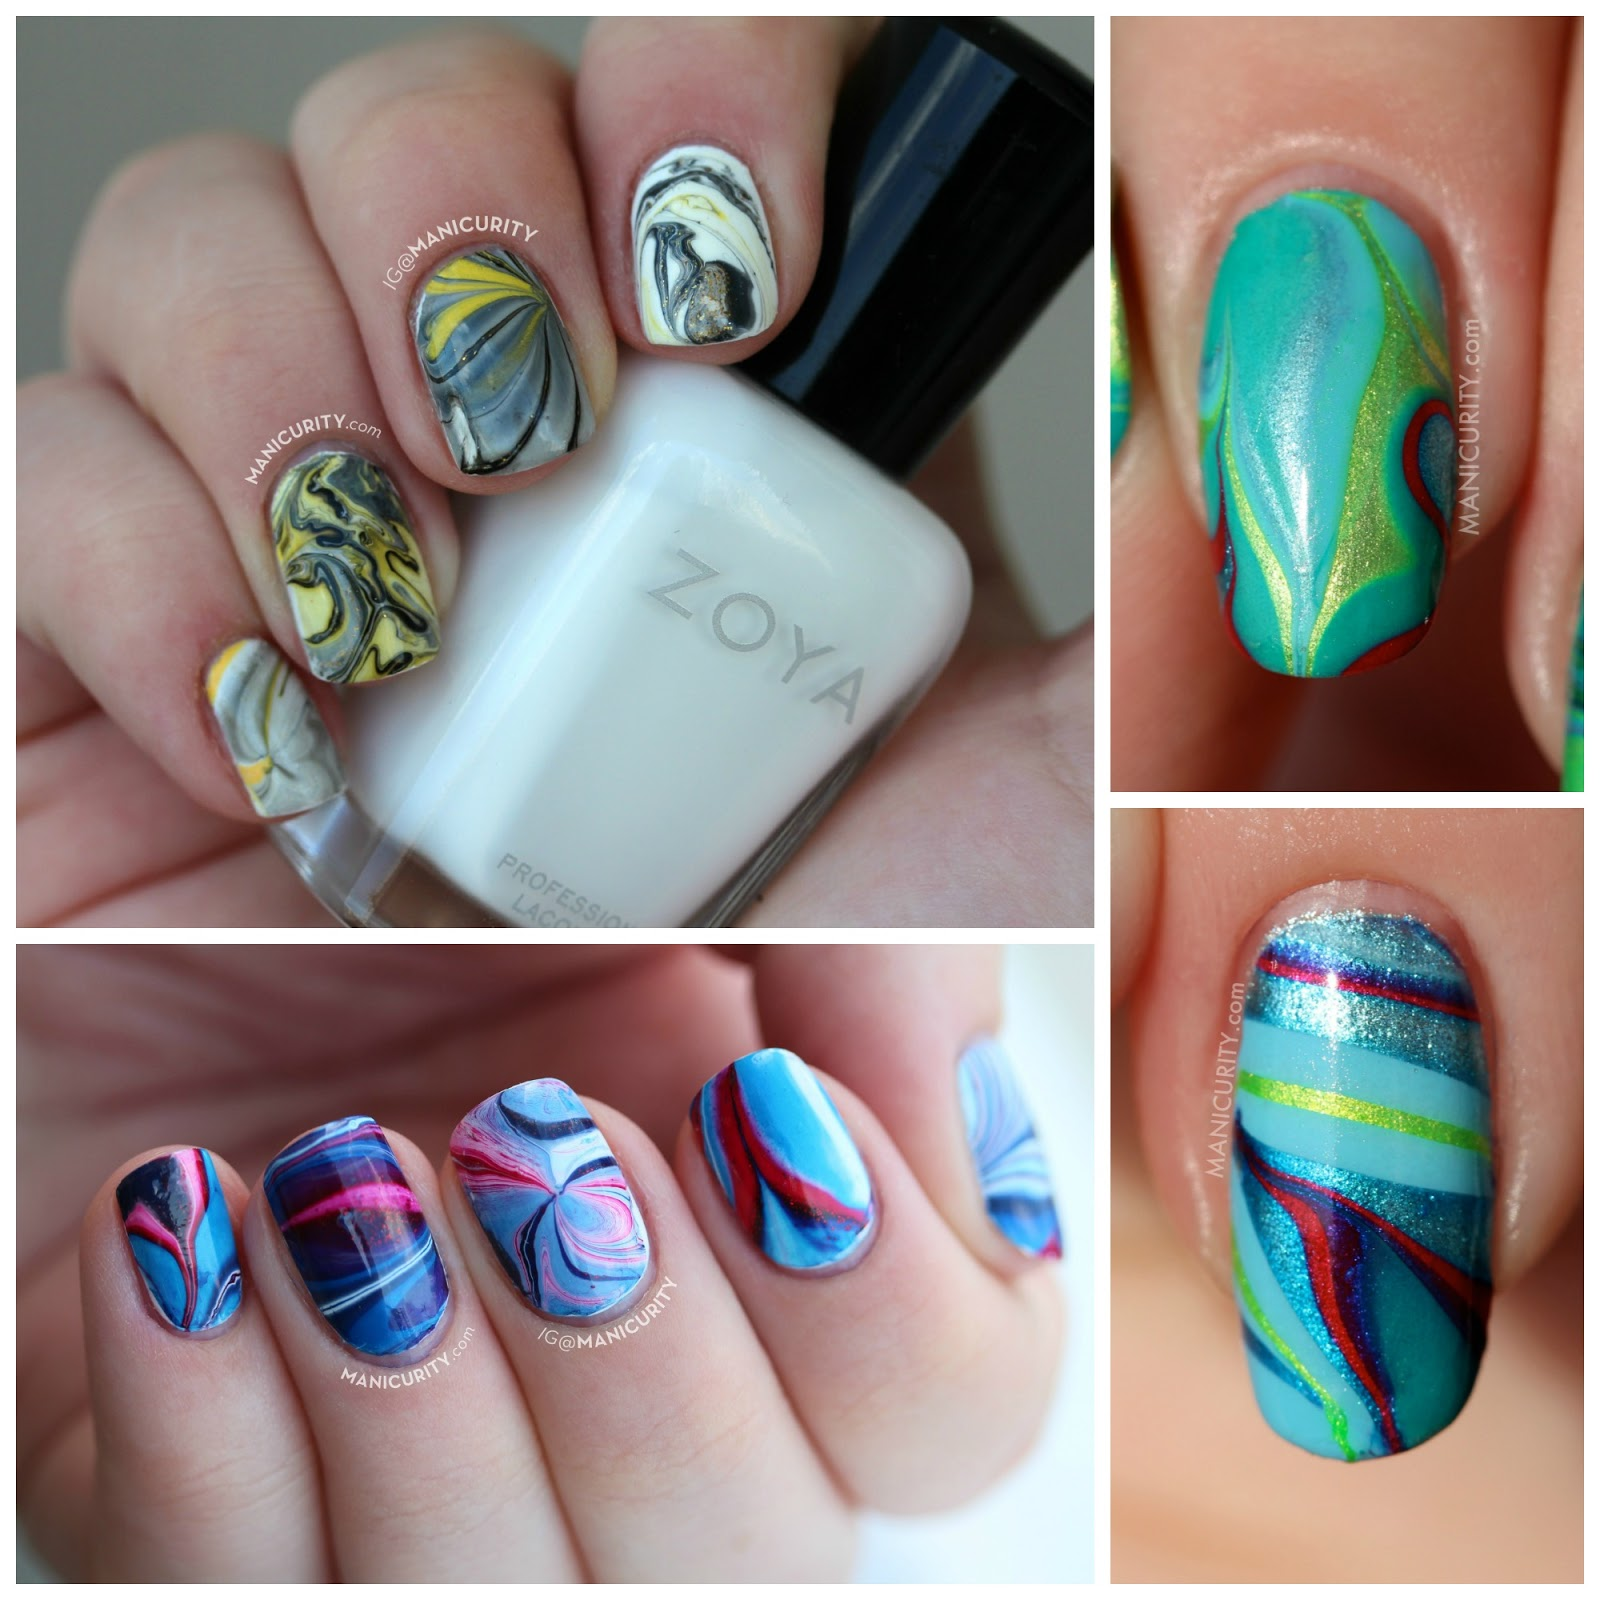 The Seven Deadly Sins of Beauty: Sloth - what product are you too lazy to apply? what nail art technique are you too lazy to do?   Manicurity.com